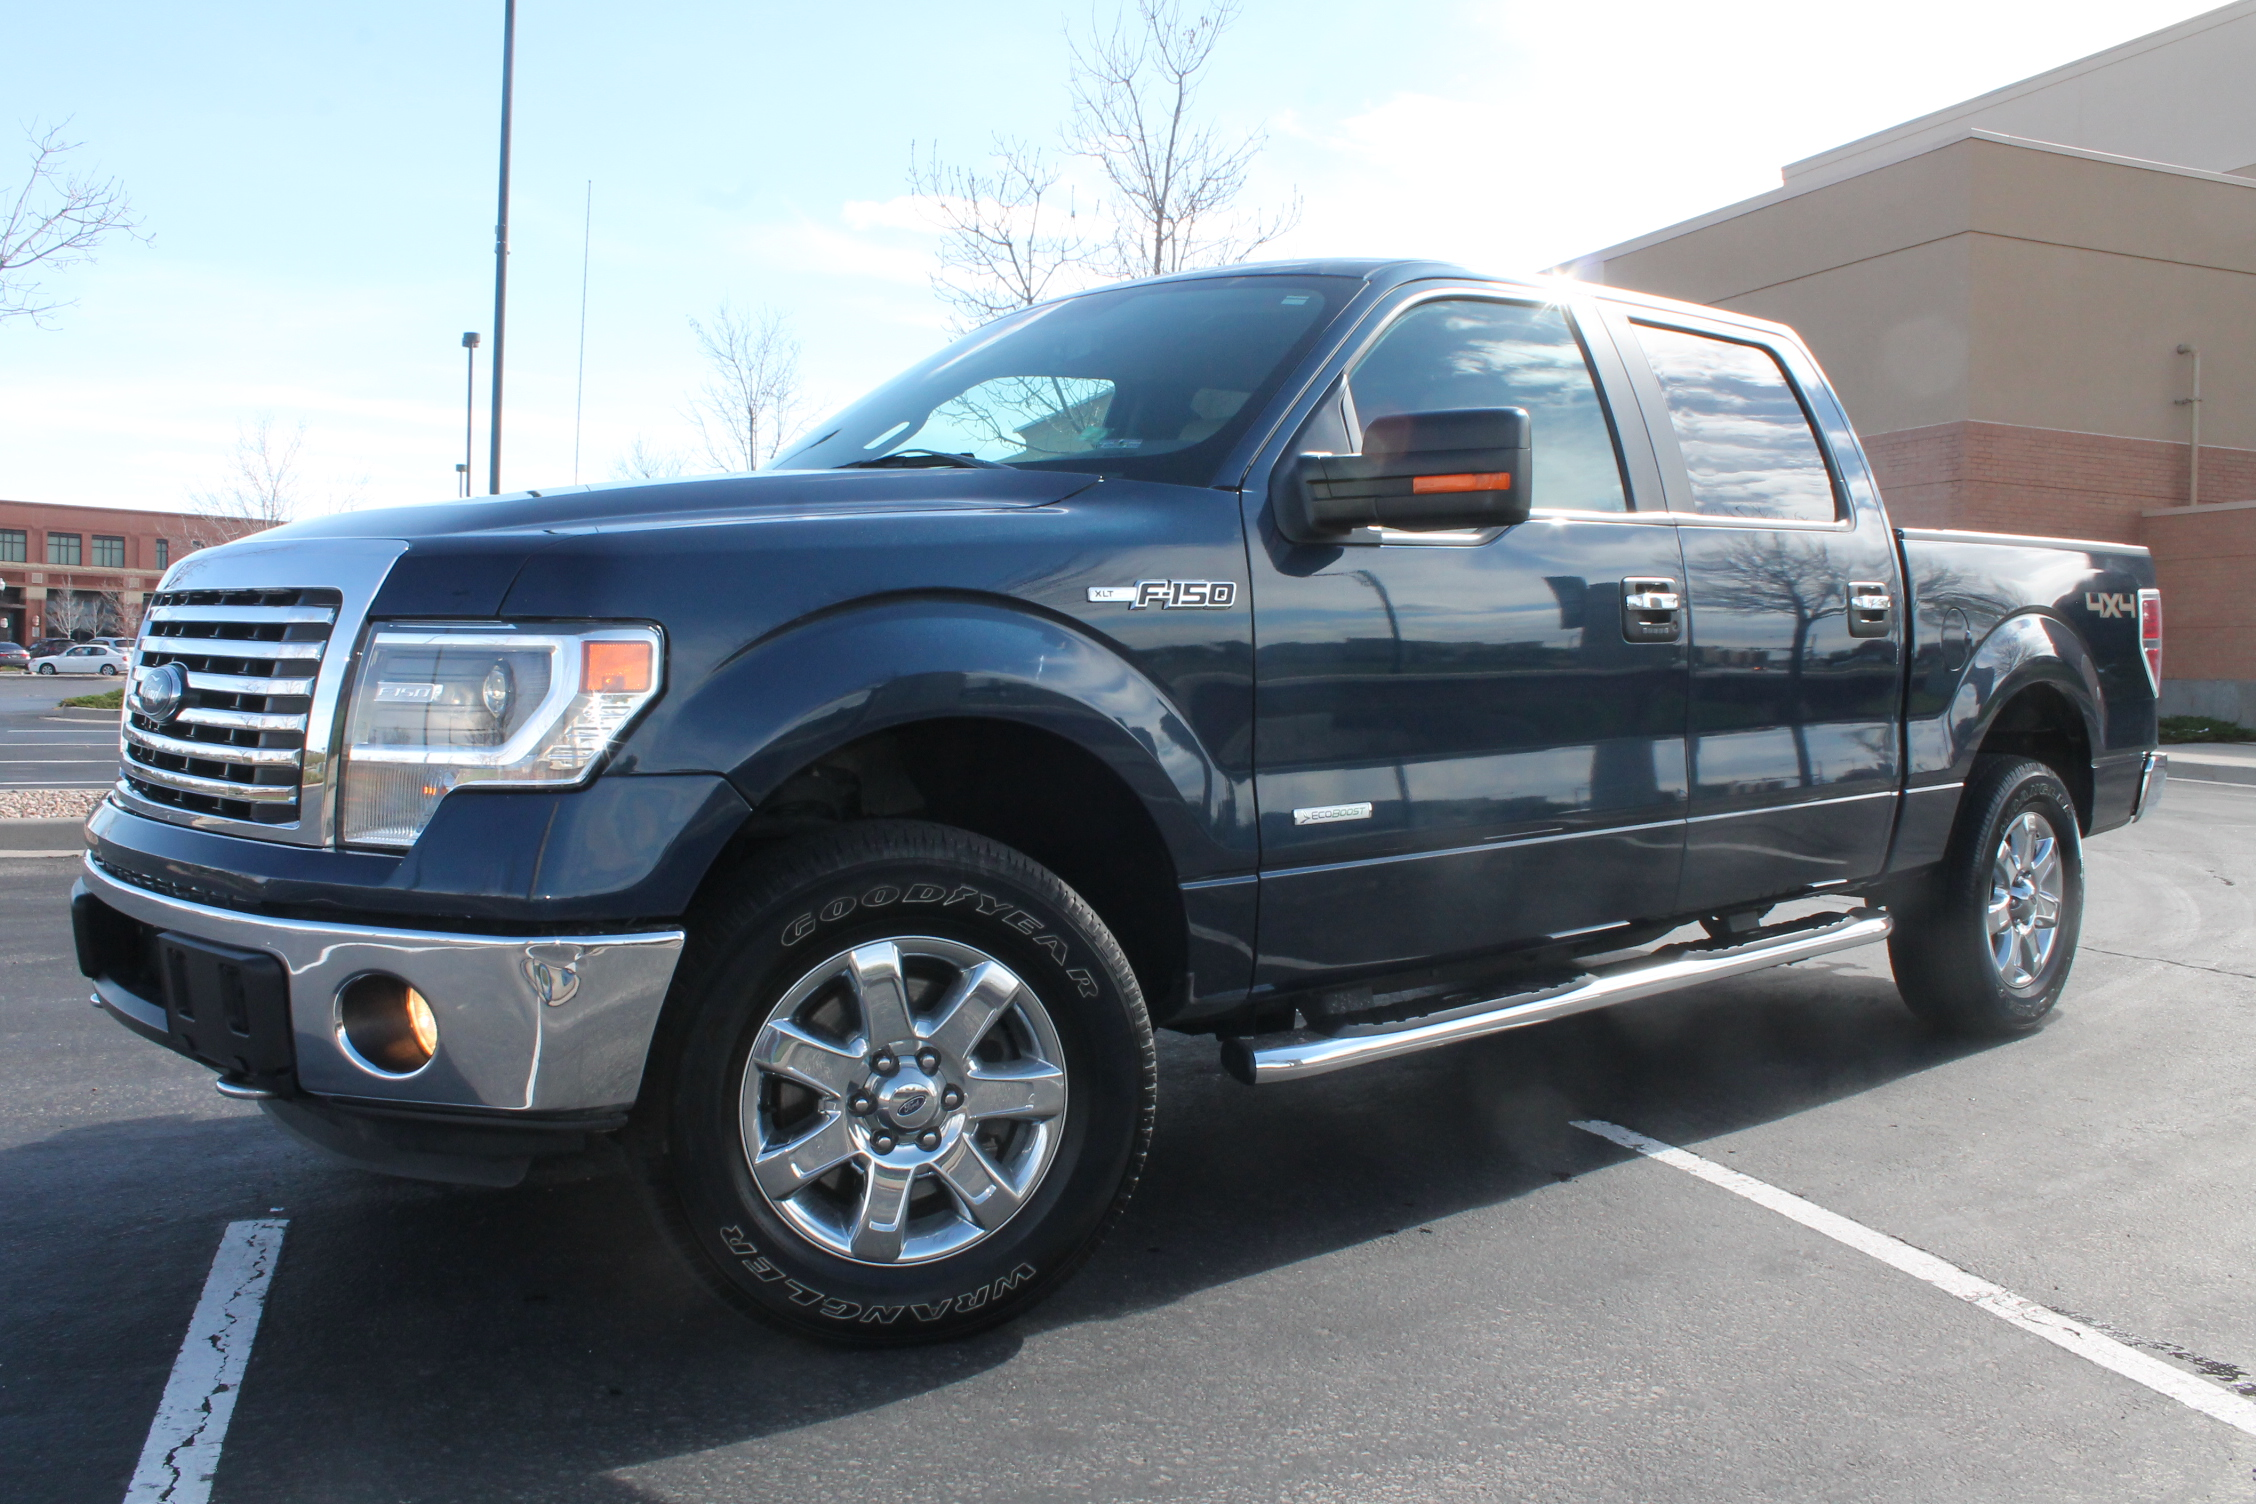 2014 ford f 150 crew cab pickup truck 4x4 3 5l ecoboost turbo mint sold collision repair. Black Bedroom Furniture Sets. Home Design Ideas